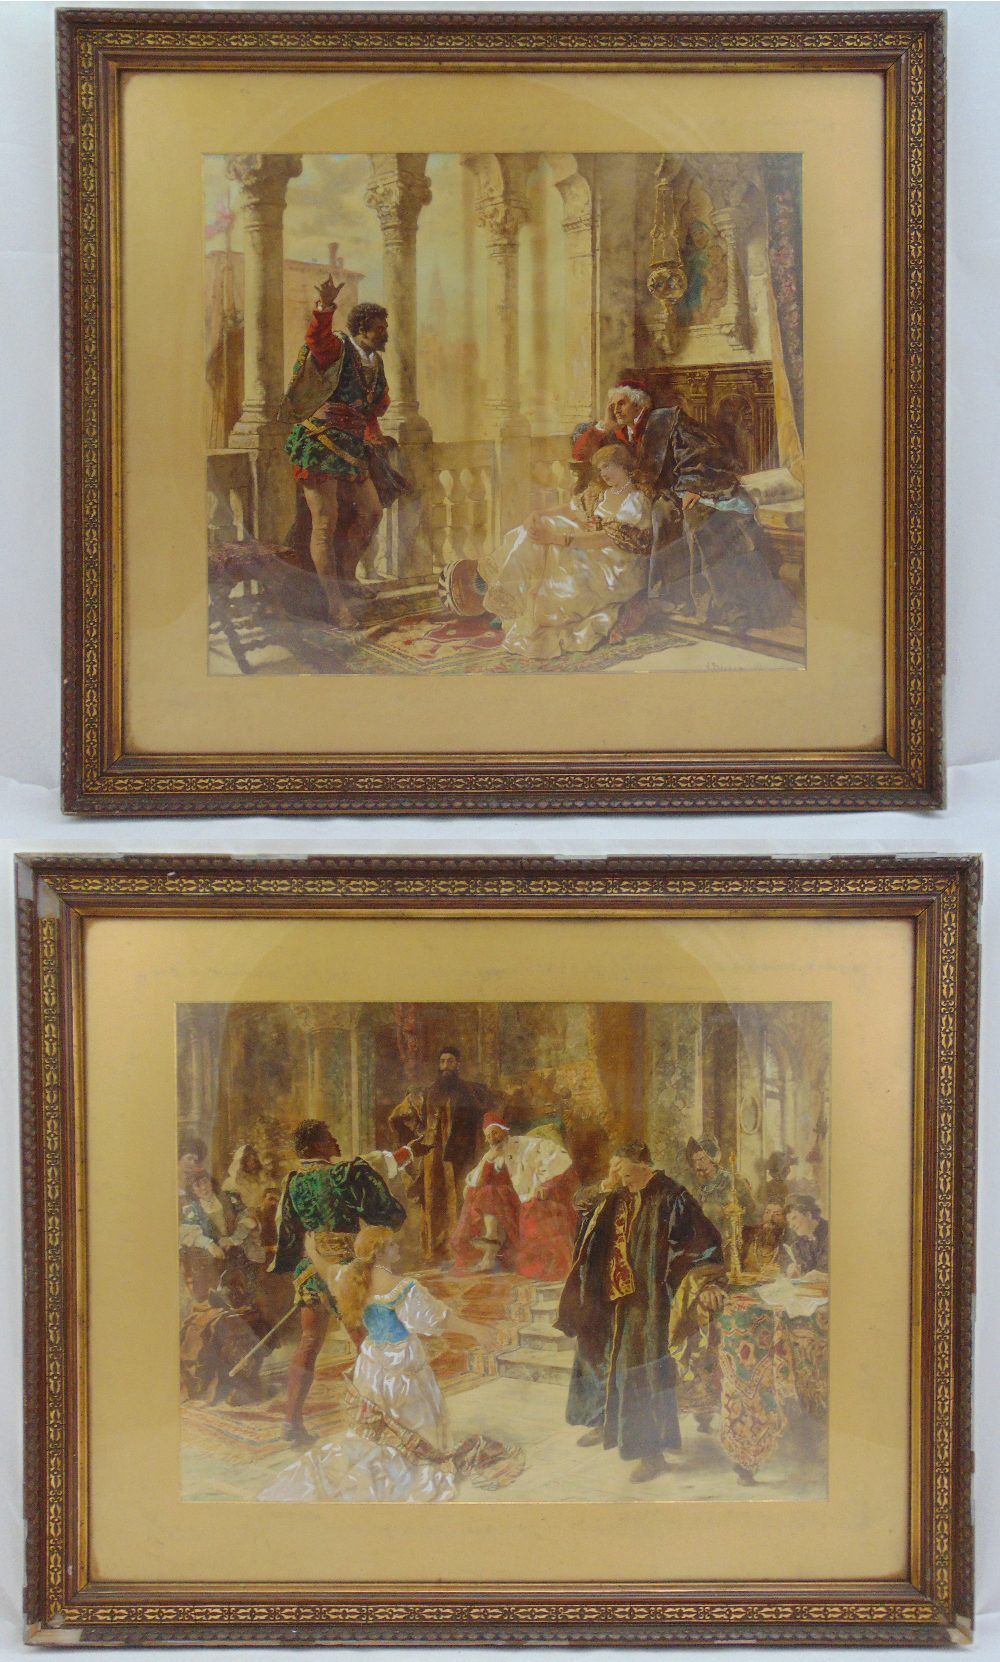 Lot 30 - Two framed and glazed polychromatic etchings of William Shakespeares Othello a. Edouard Frederic